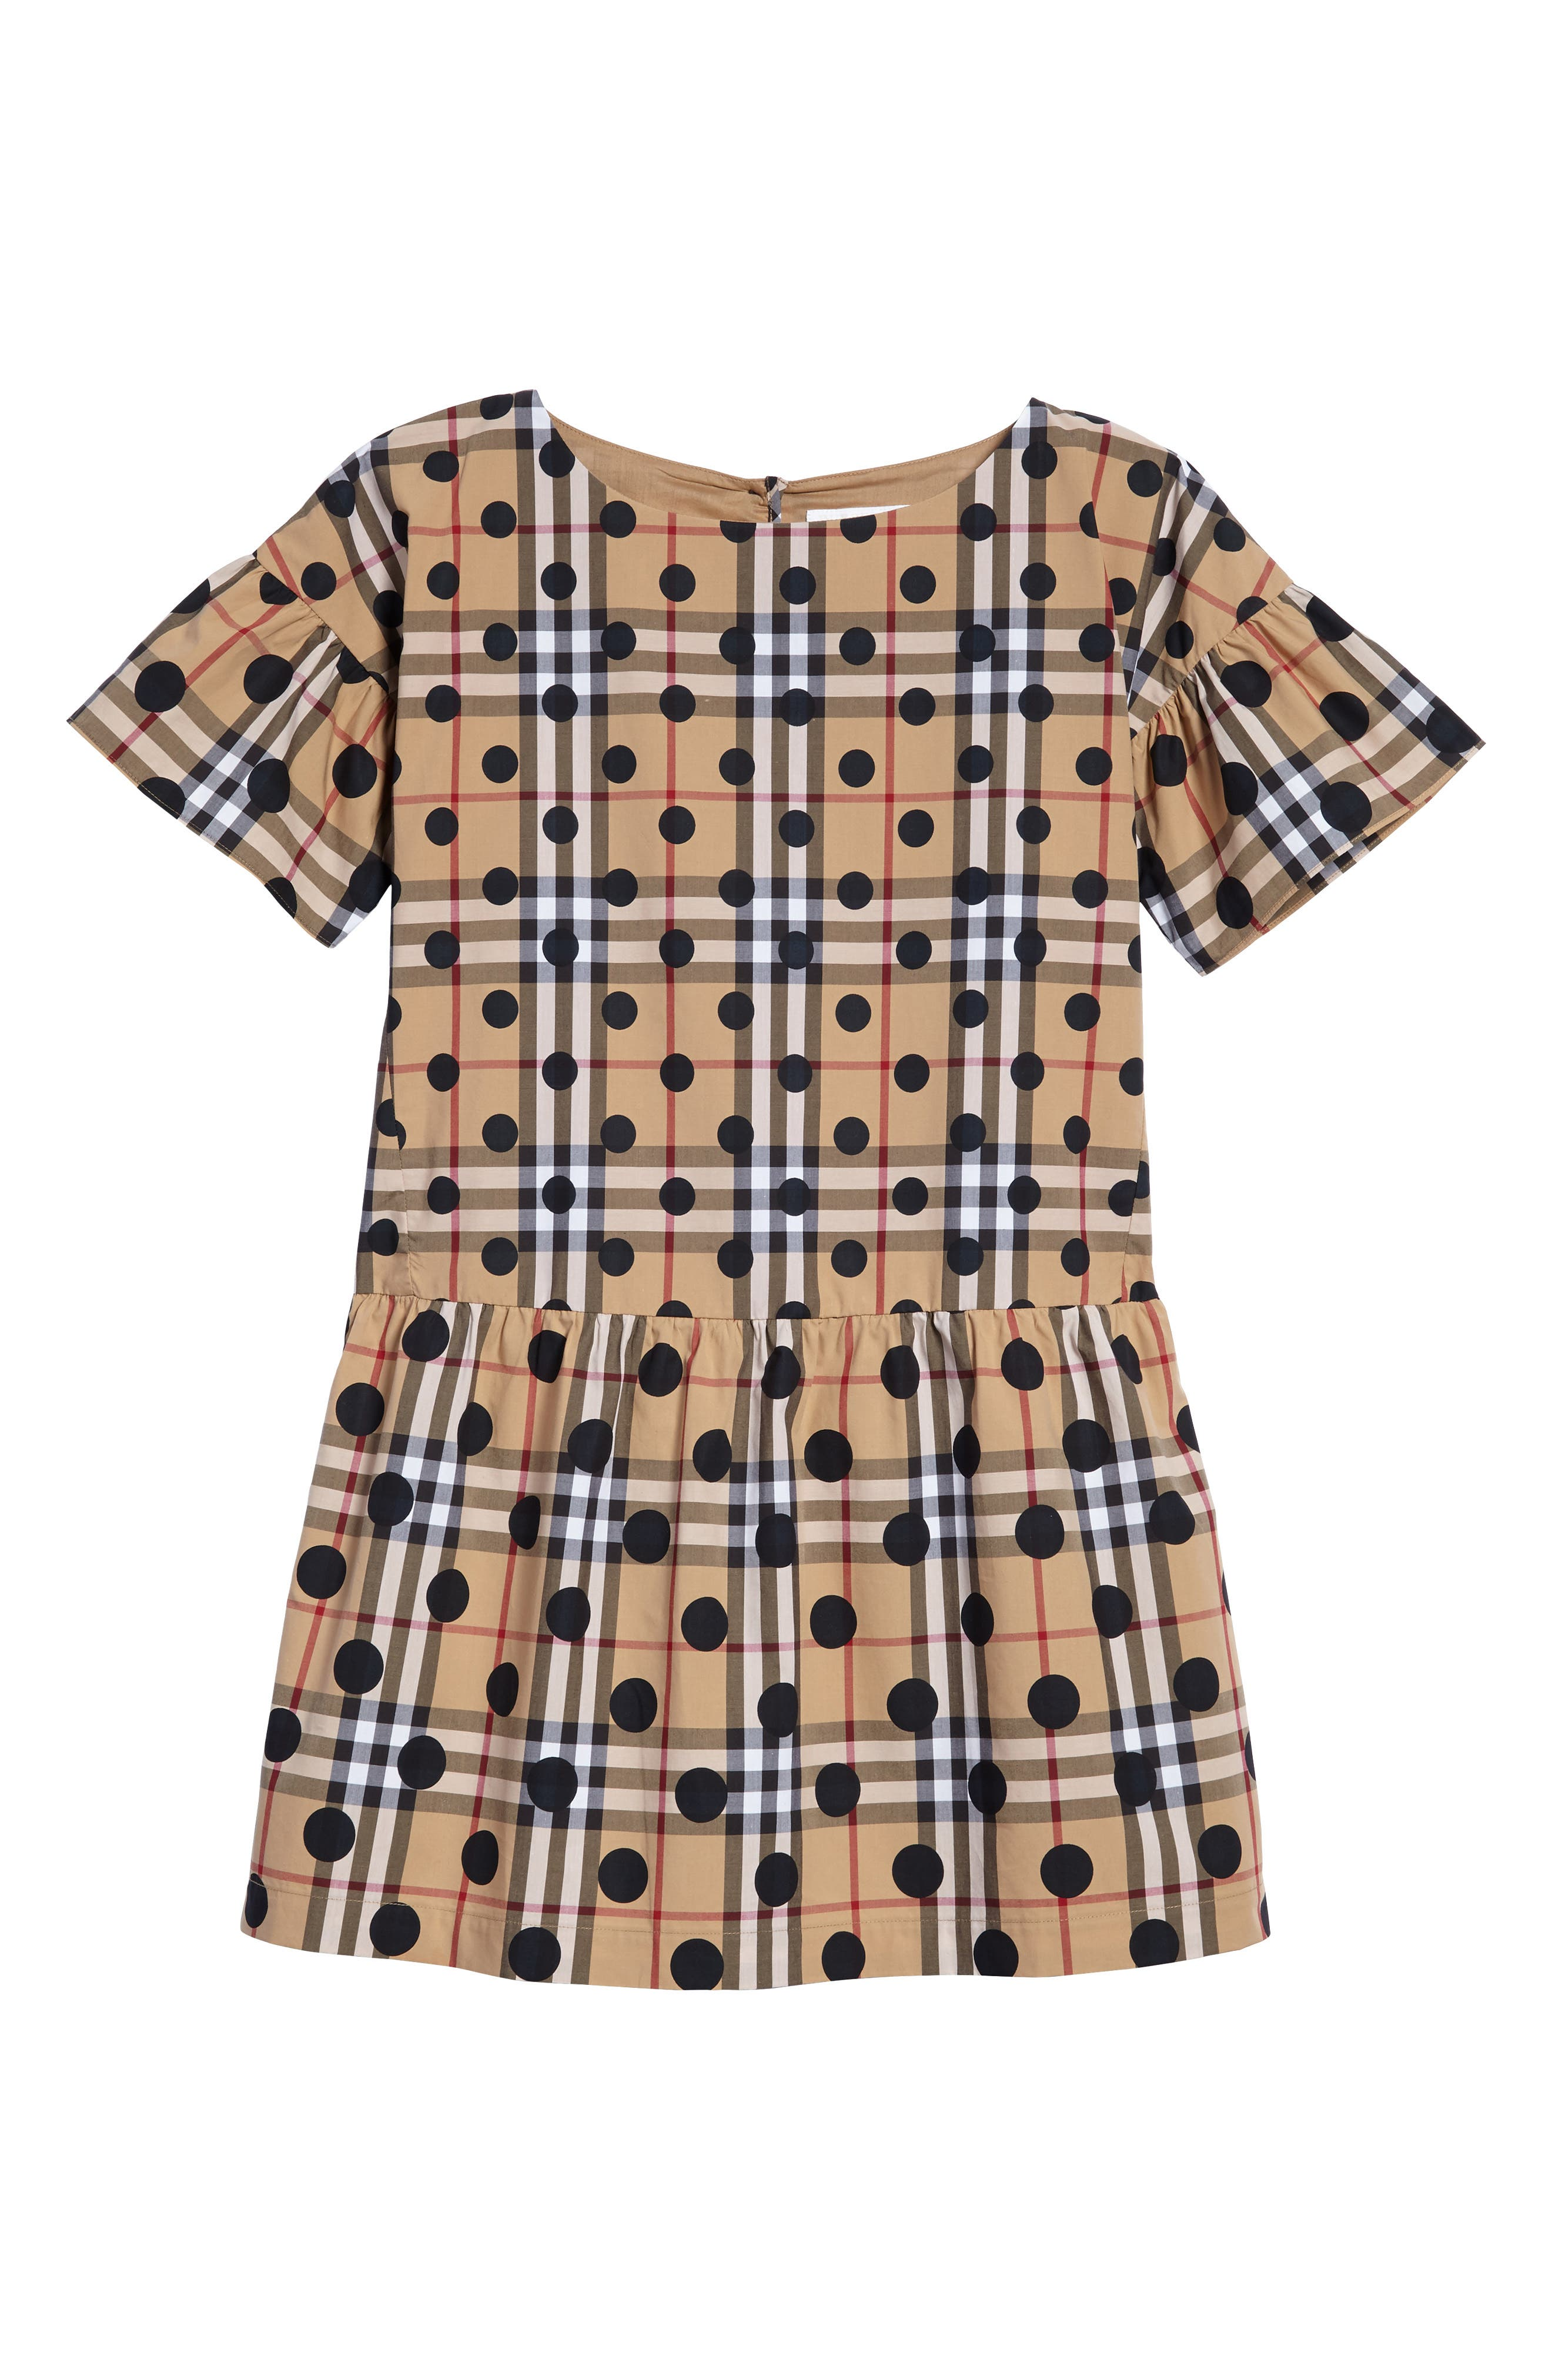 Burberry Sale Womens Mens Kids Nordstrom - Invoice templates for free burberry outlet online store